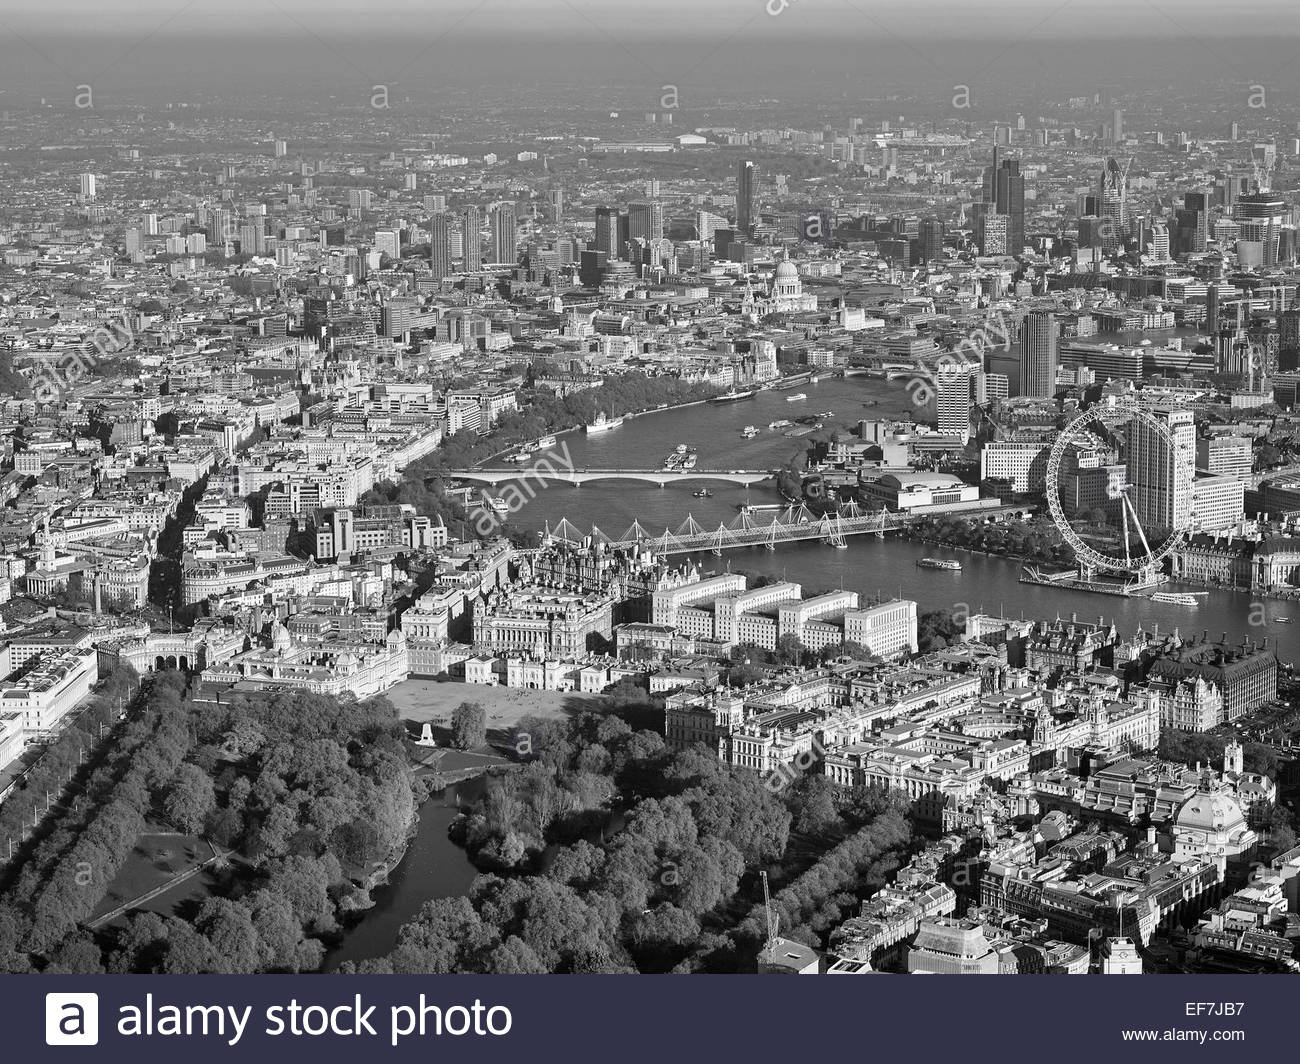 The River Thames from the air, Central London, UK looking East towards the City, Hungerford Bridge and the Eye right - Stock Image